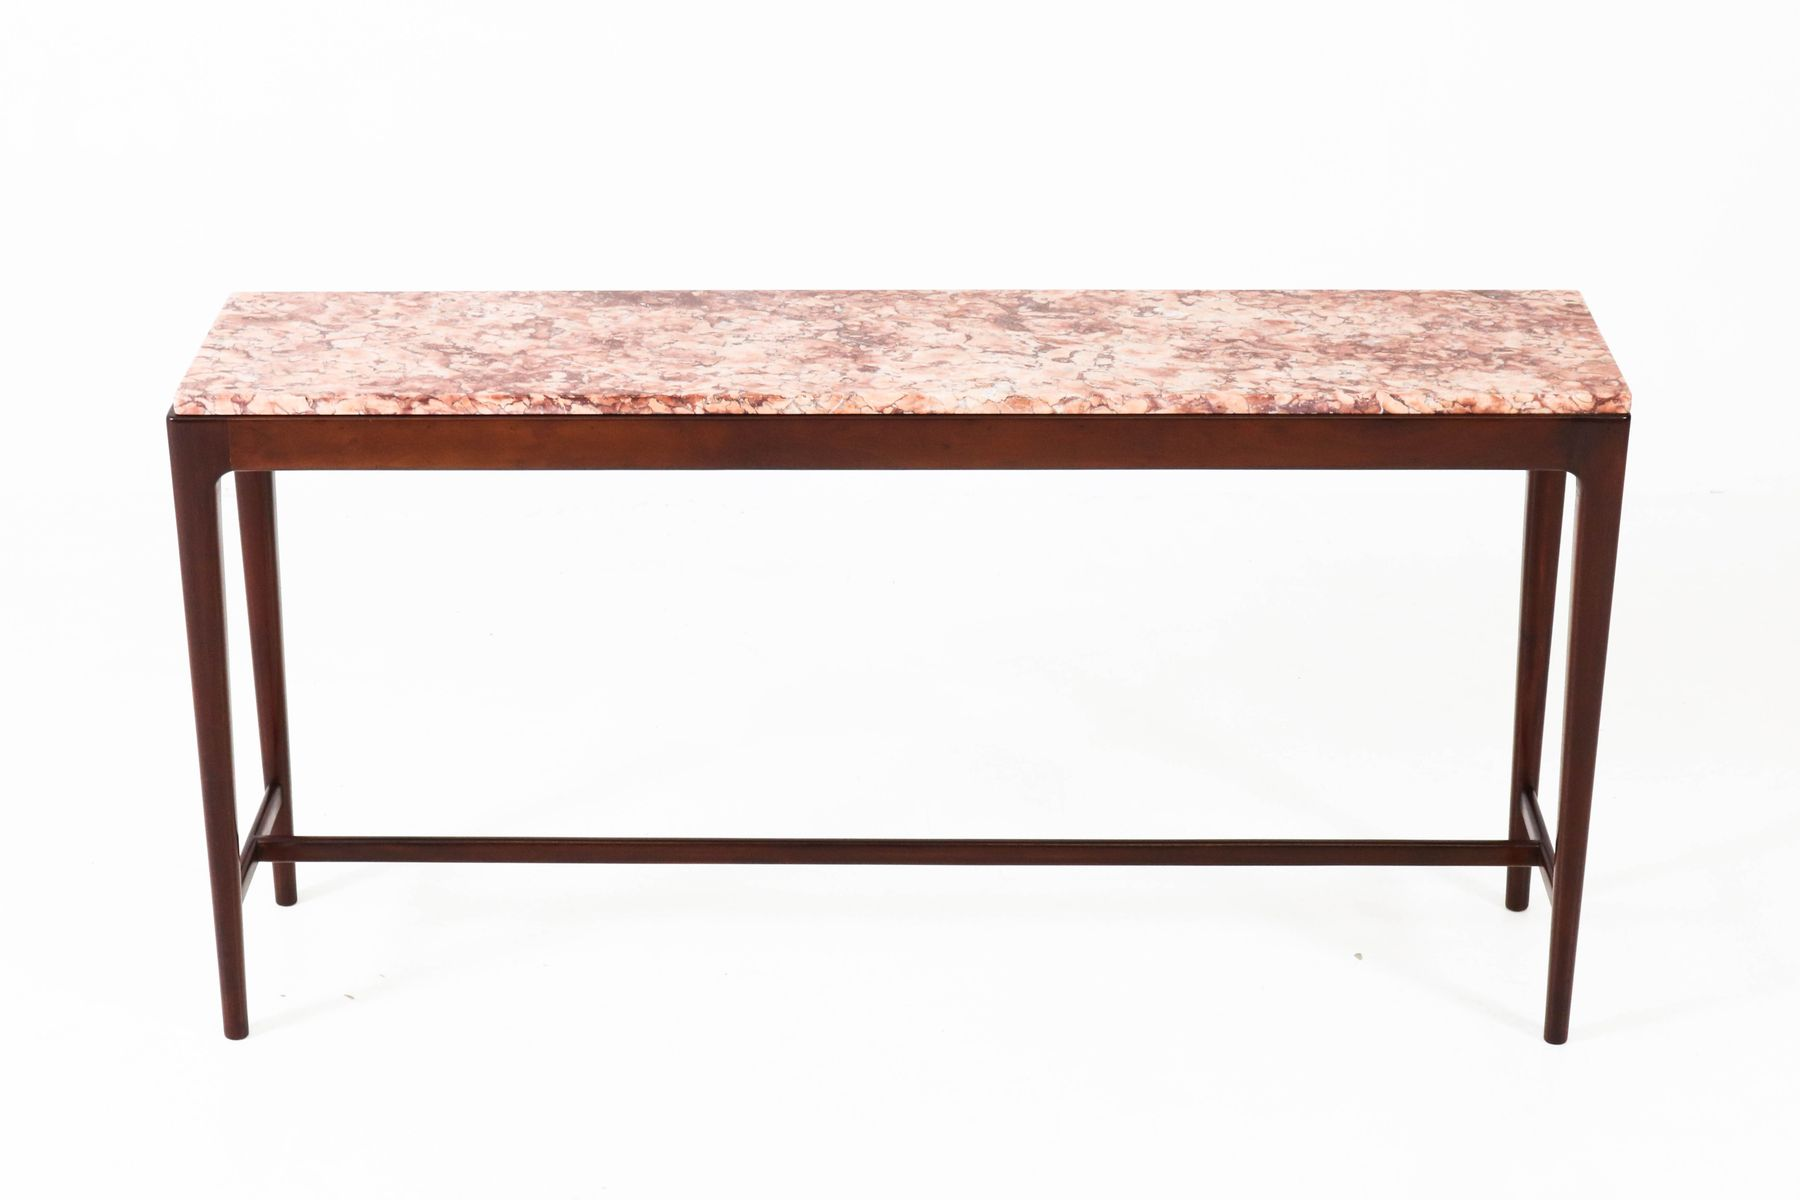 Delightful Mid Century Modern Danish Mahogany Console Table With Marble Top, 1960s